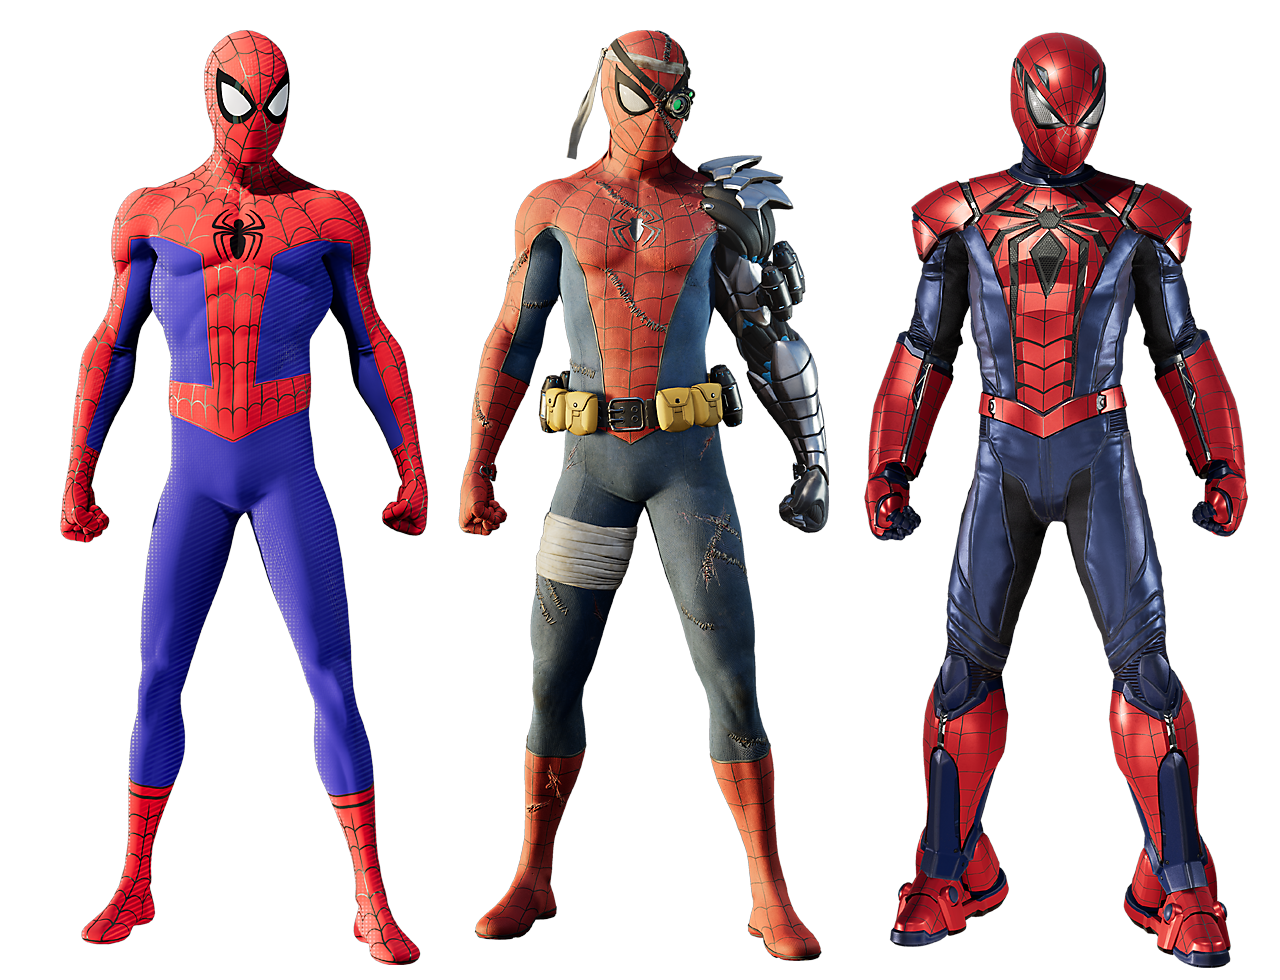 Marvel's Spider-Man - Silver Lining suits